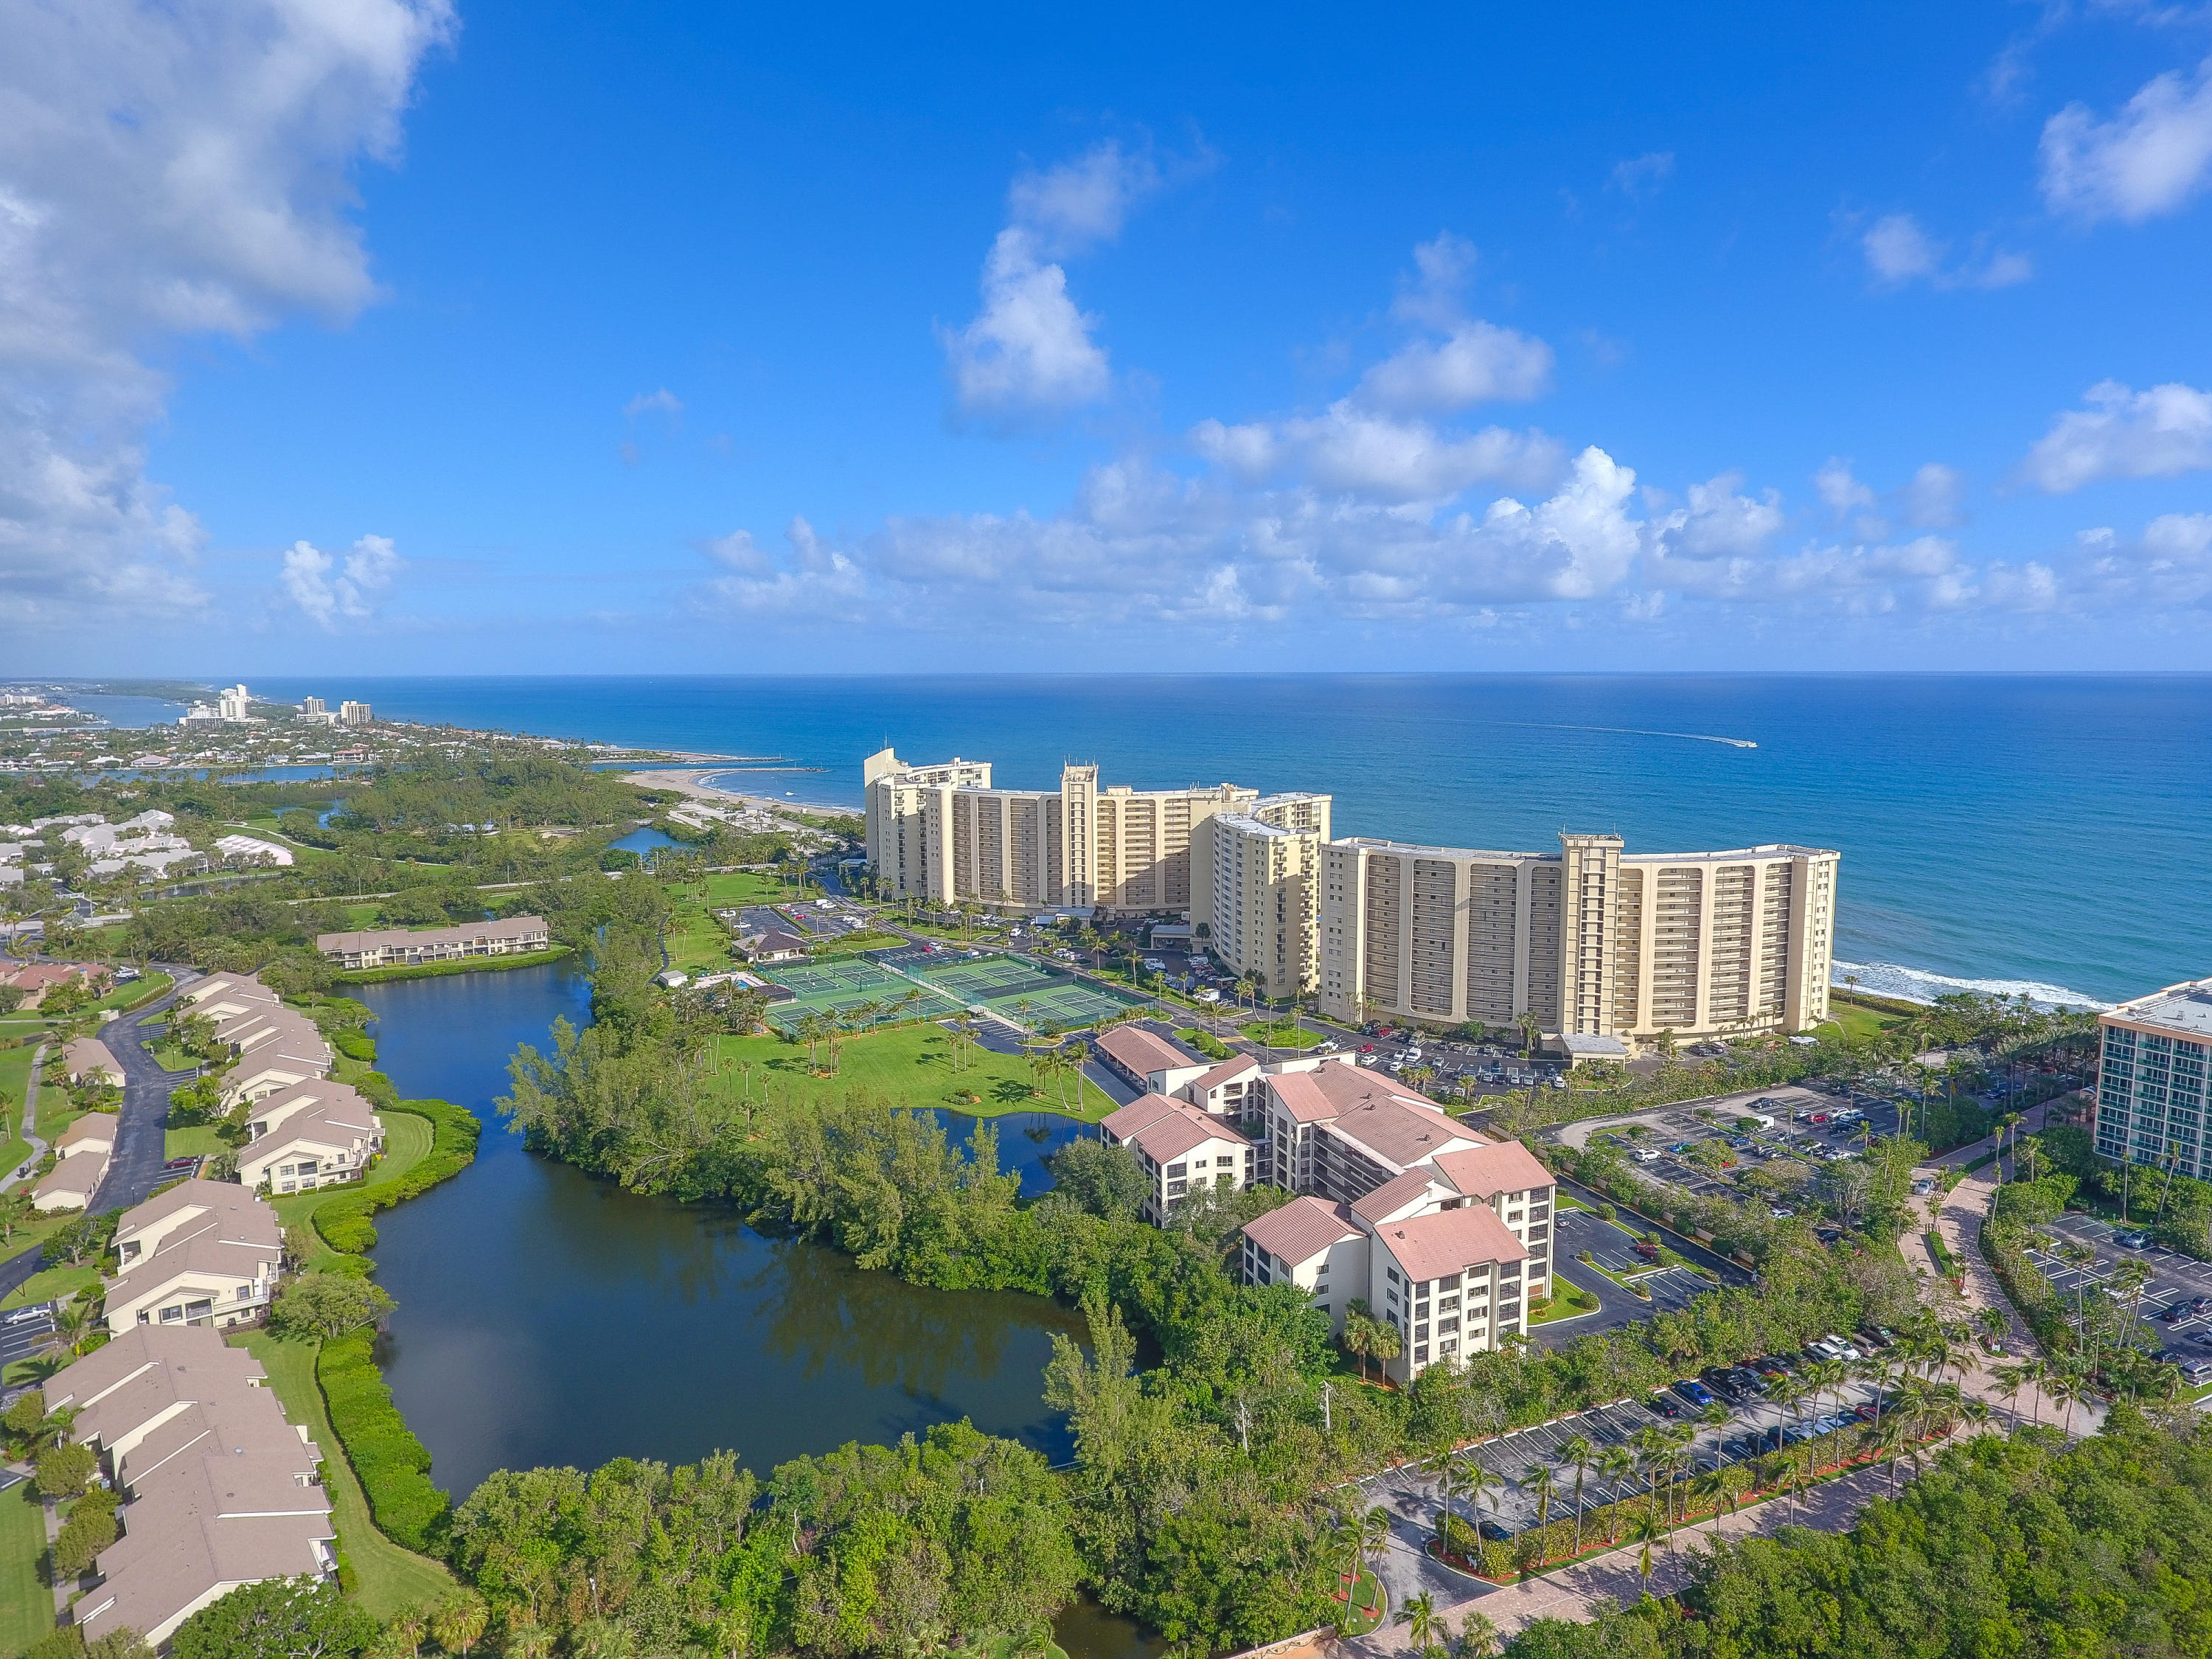 Photo of 300 Ocean Trail Way #206, Jupiter, FL 33477